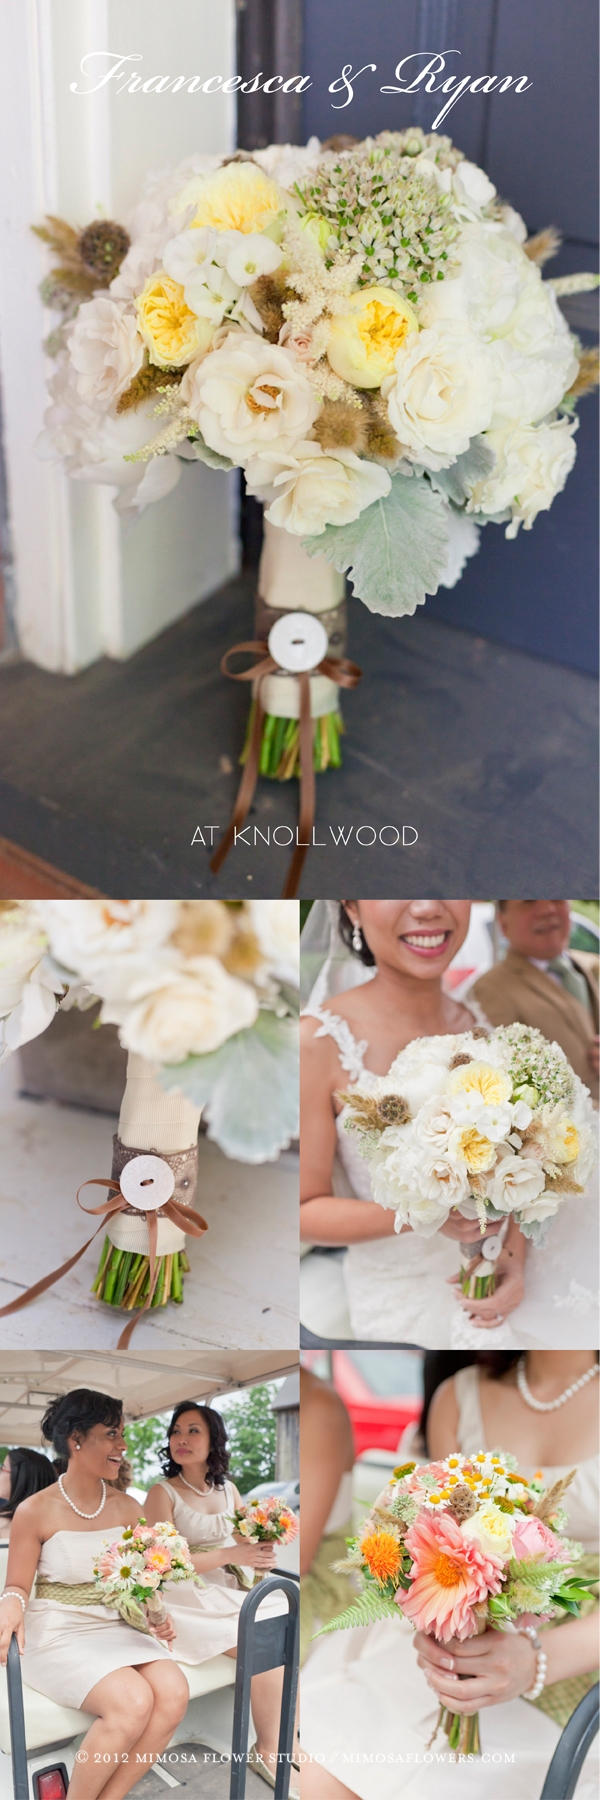 Wedding at Knollwood Golf Course - Bride's Bouquet